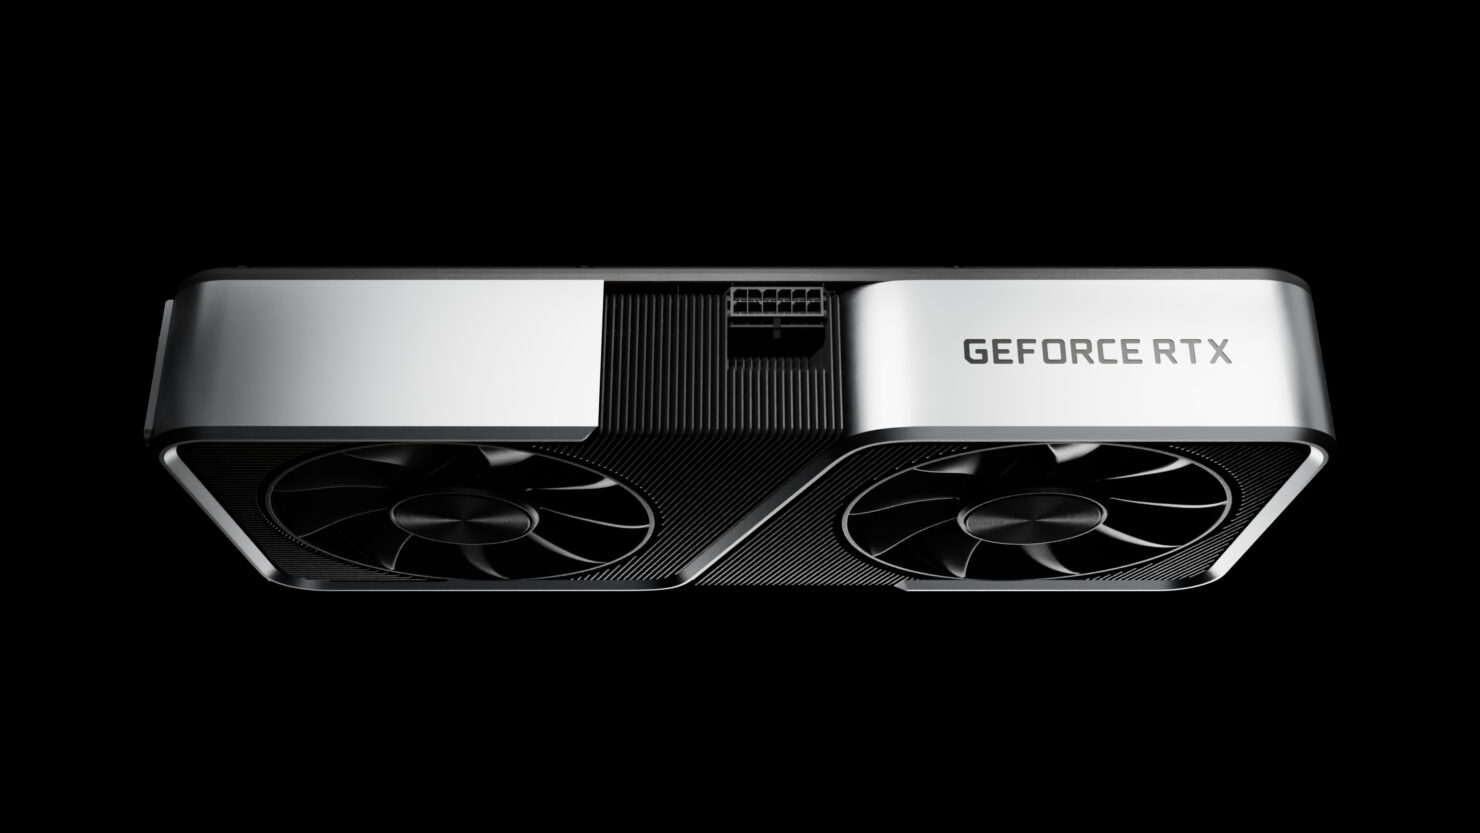 nvidia-to-increase-geforce-rtx-3060-graphics-card-supply-in-july,-china-crypto-ban-also-slashes-prices-on-rtx-30-series